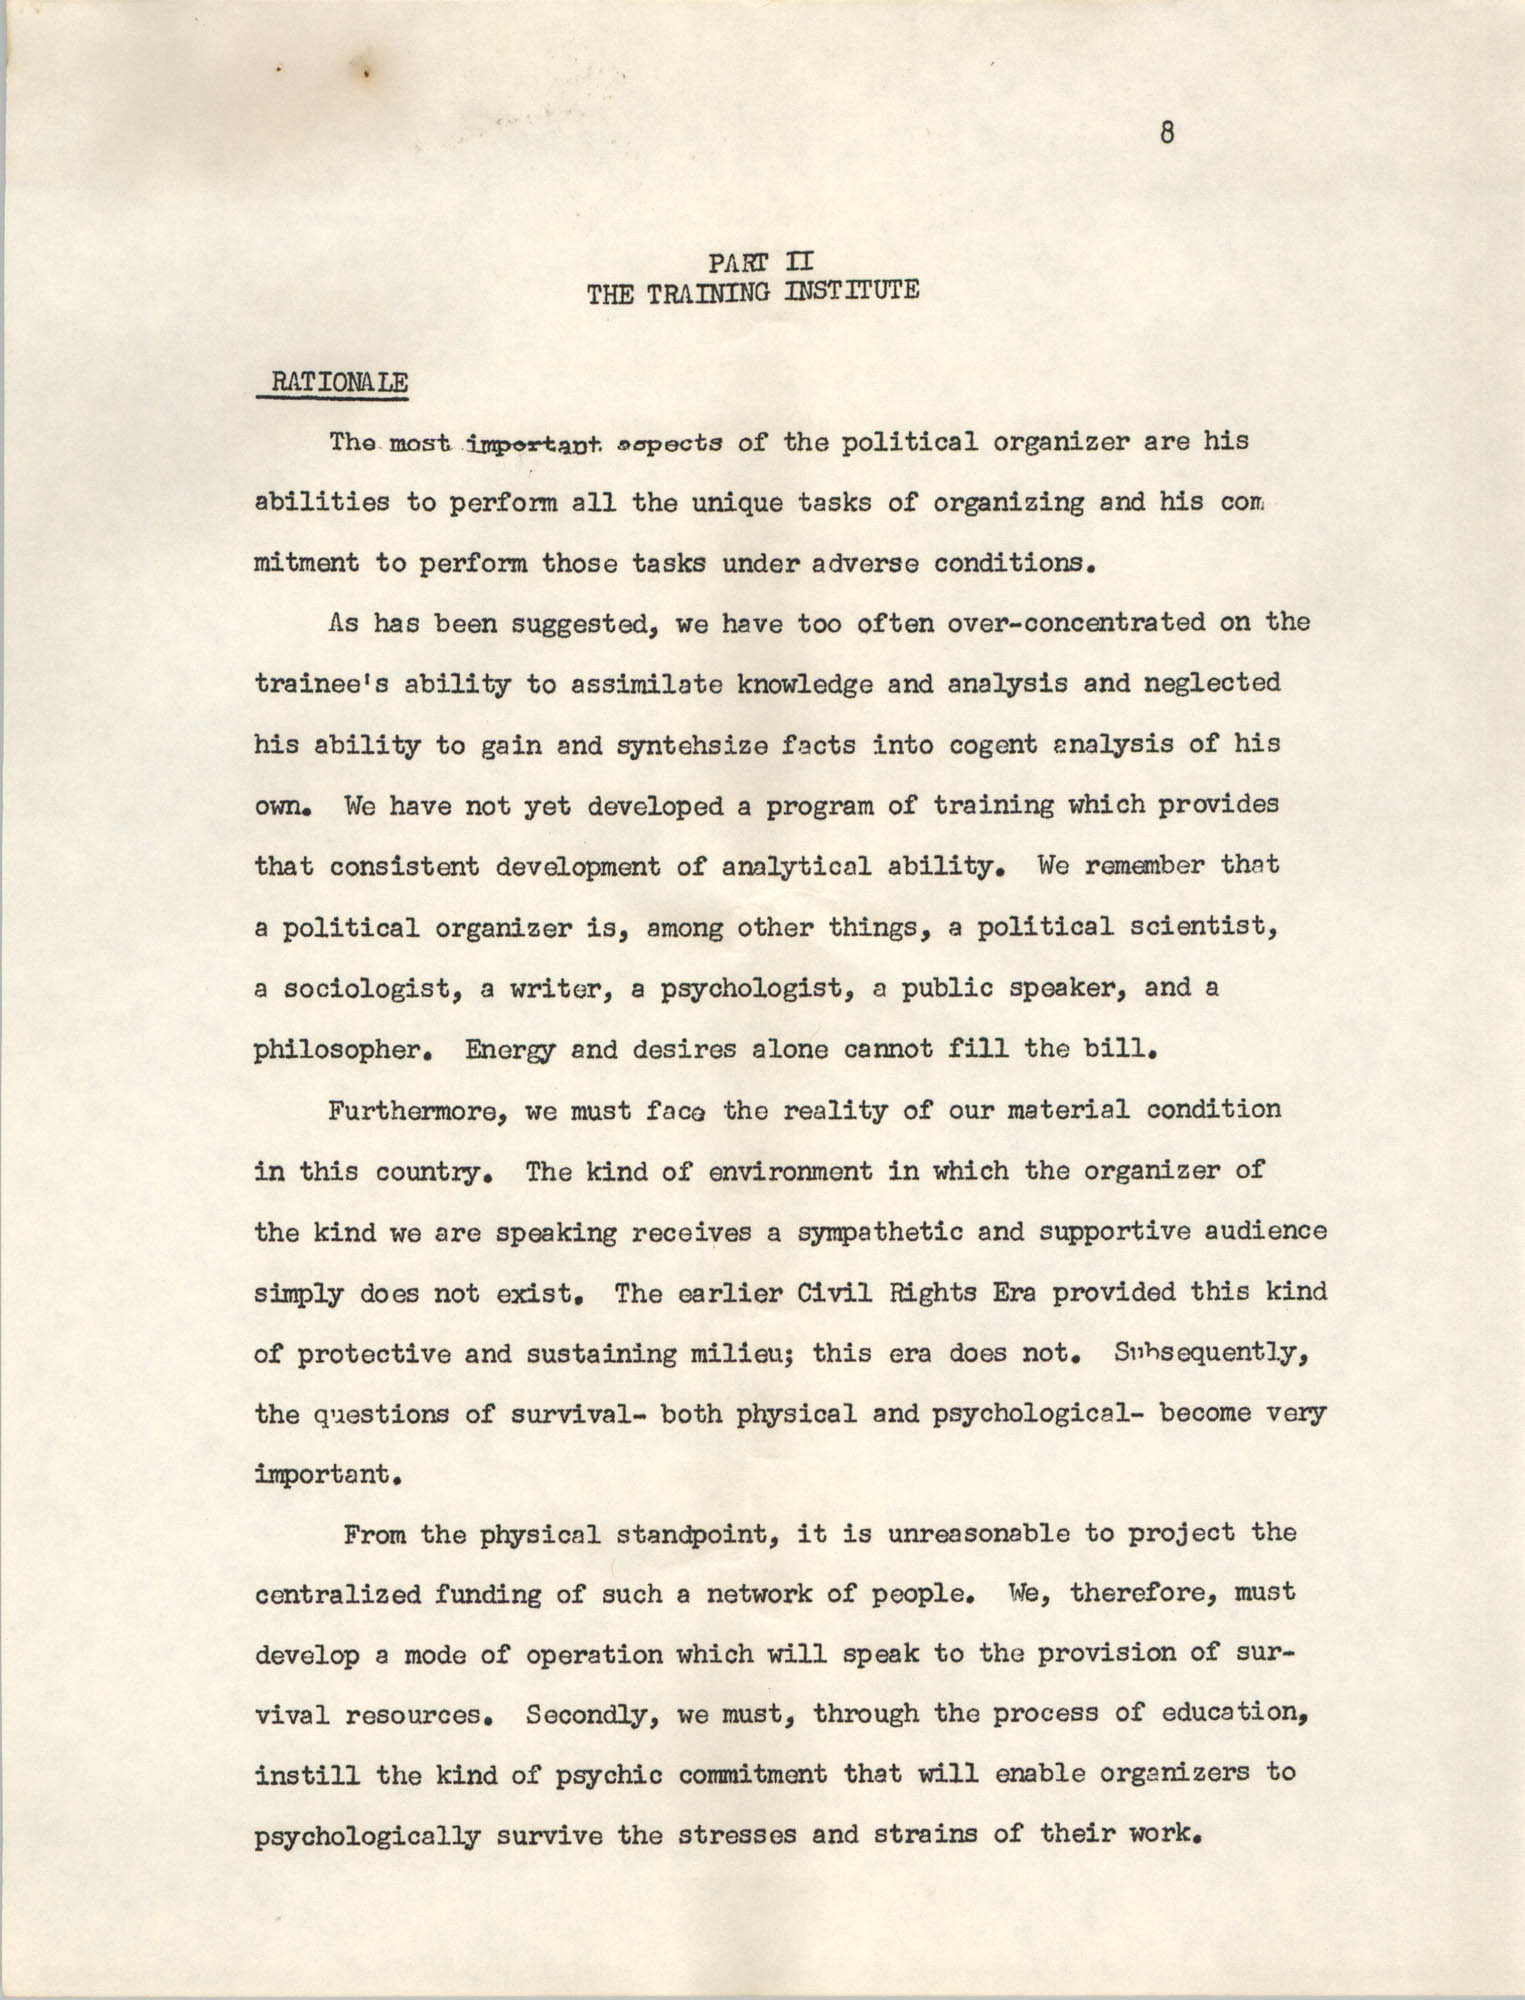 A Proposal for the Development of a Training Institute, Page 8